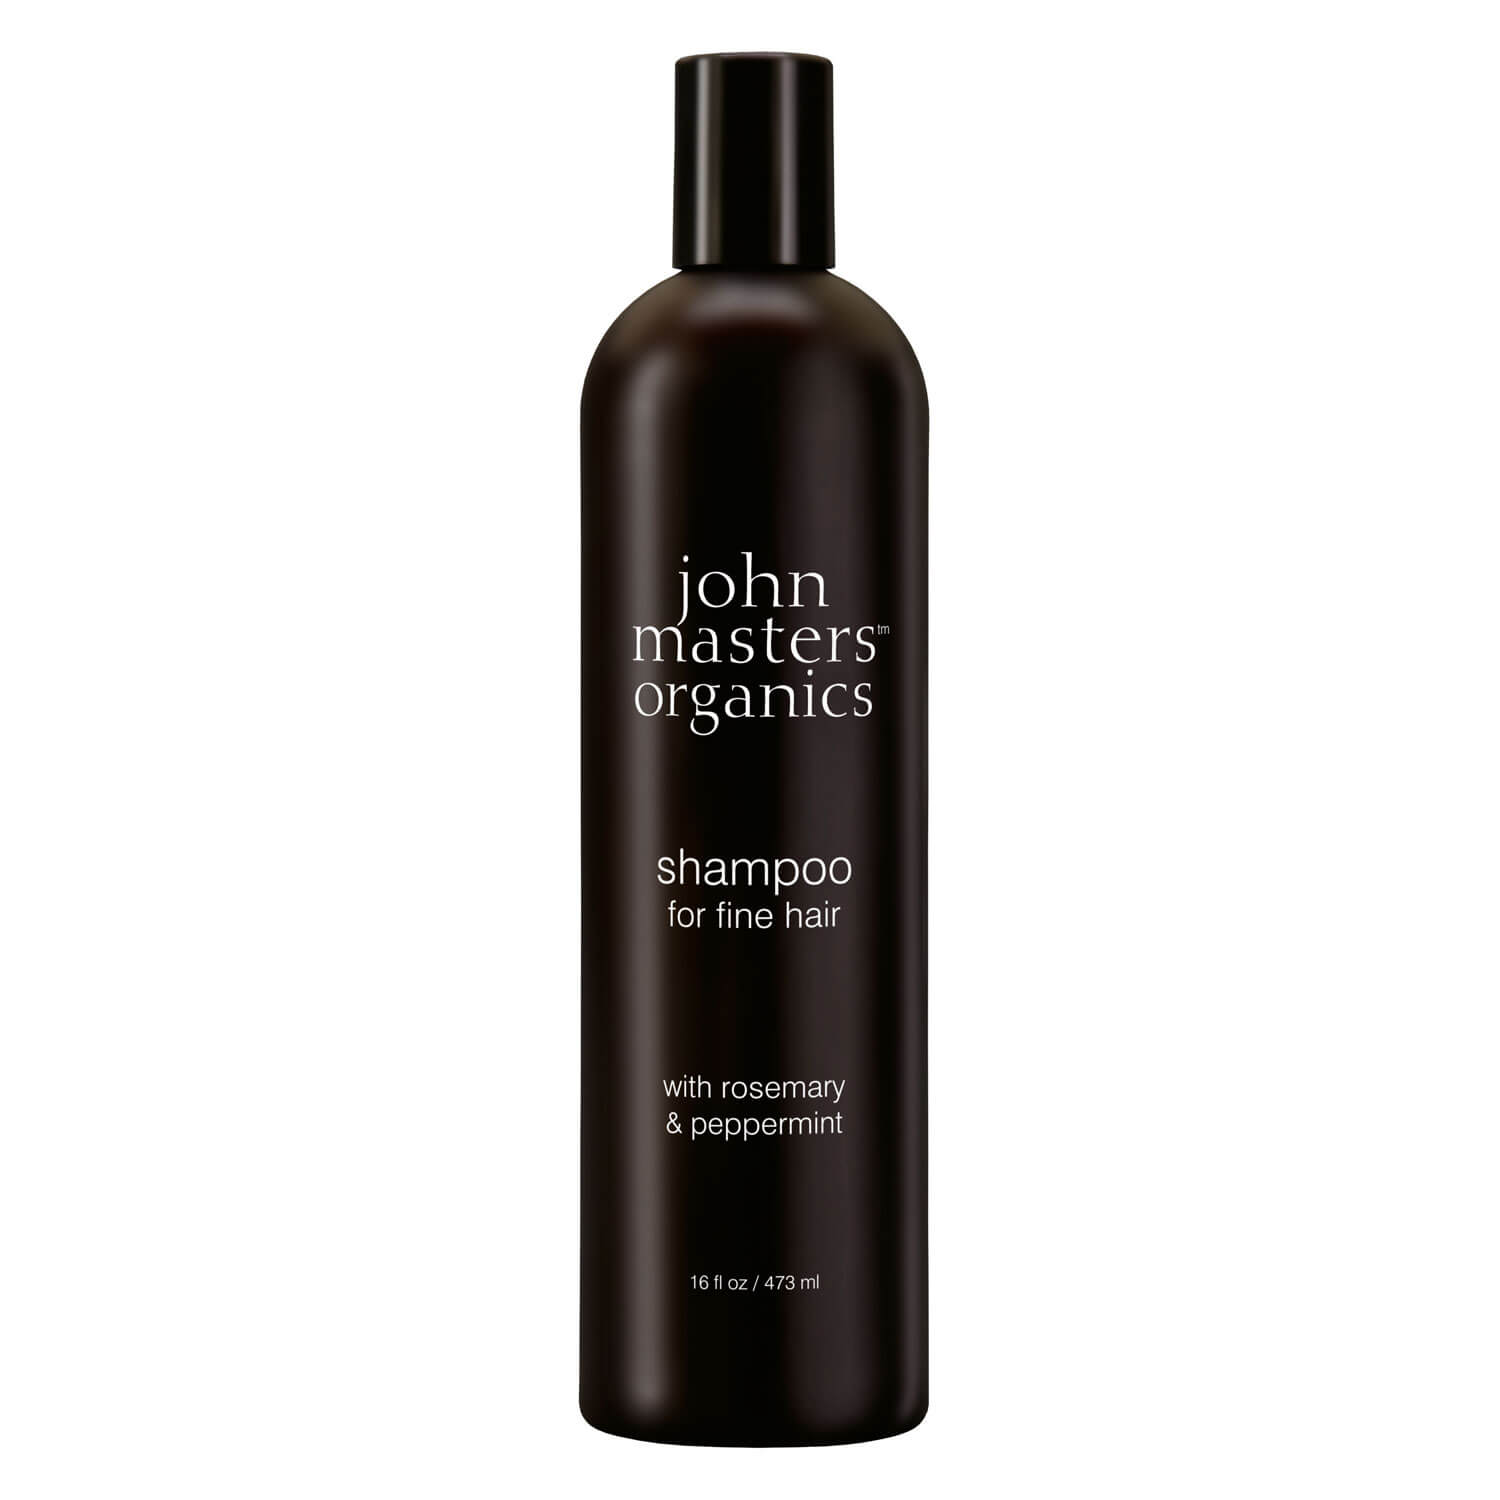 JMO Hair Care - Rosemary & Peppermint Shampoo